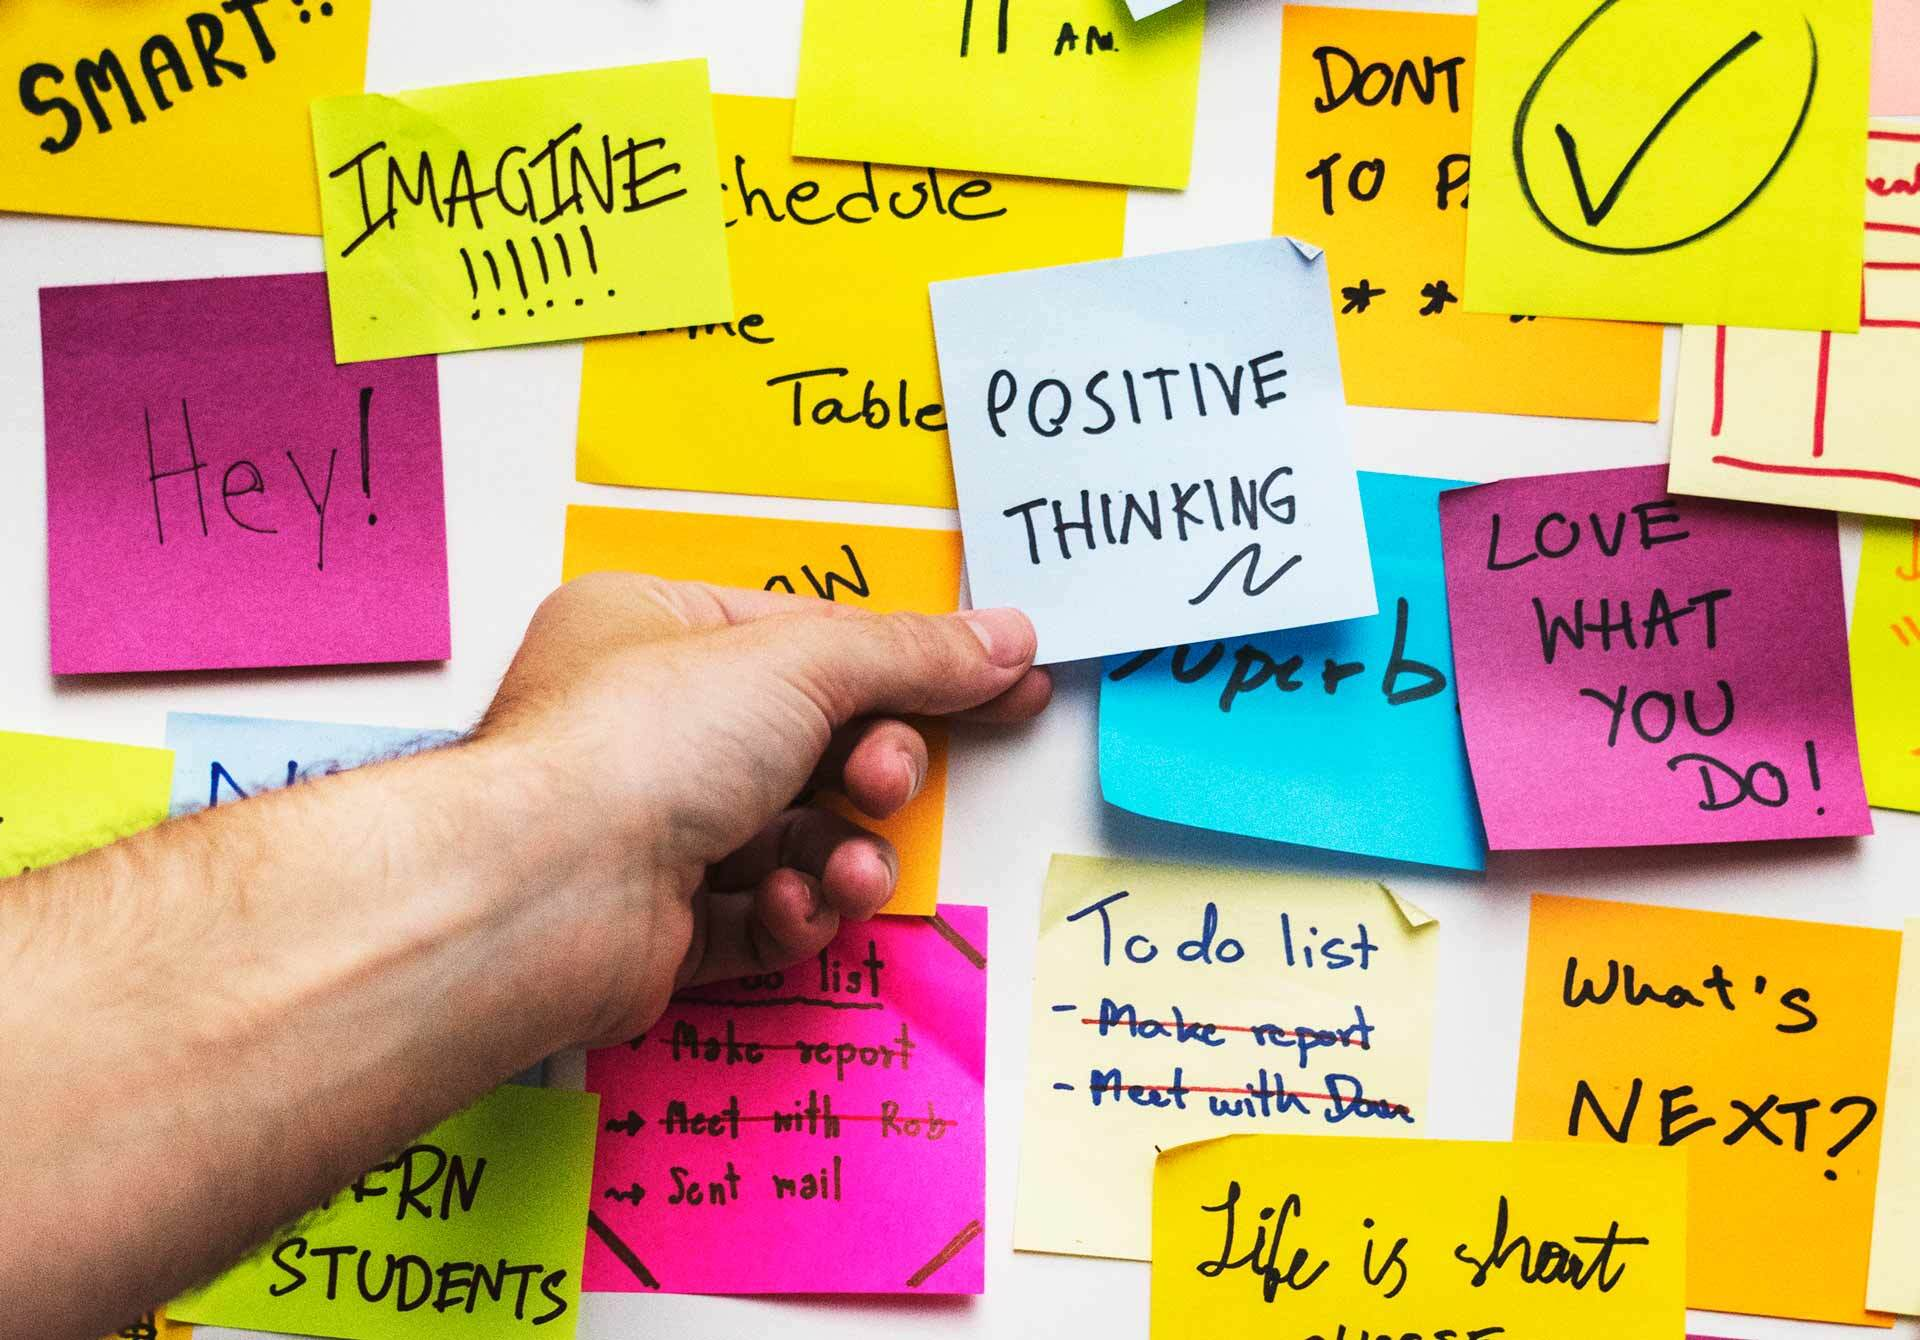 Notes positive thinking